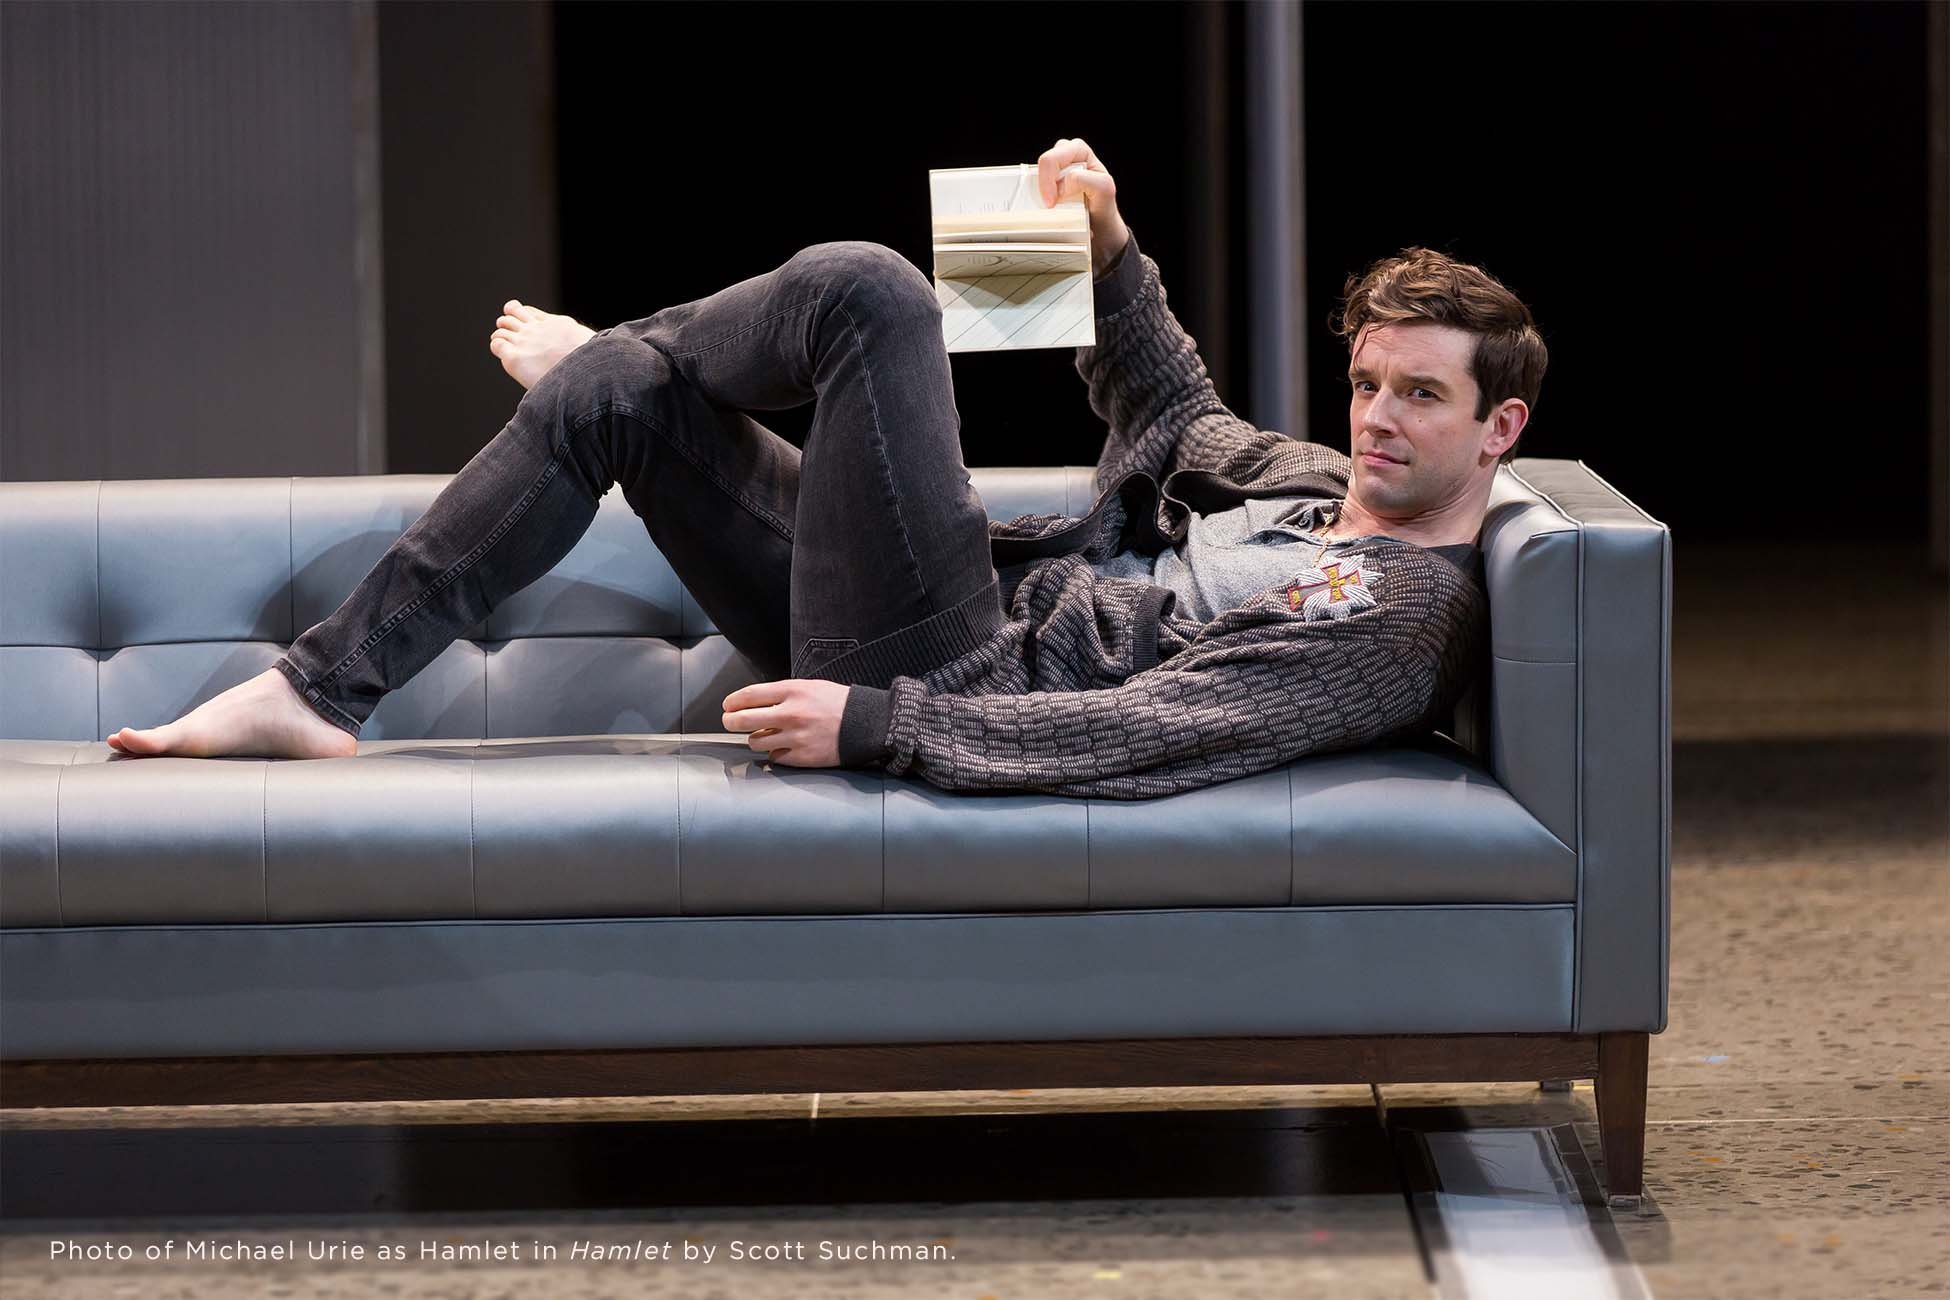 Photo of Michael Urie by Scott Suchman.